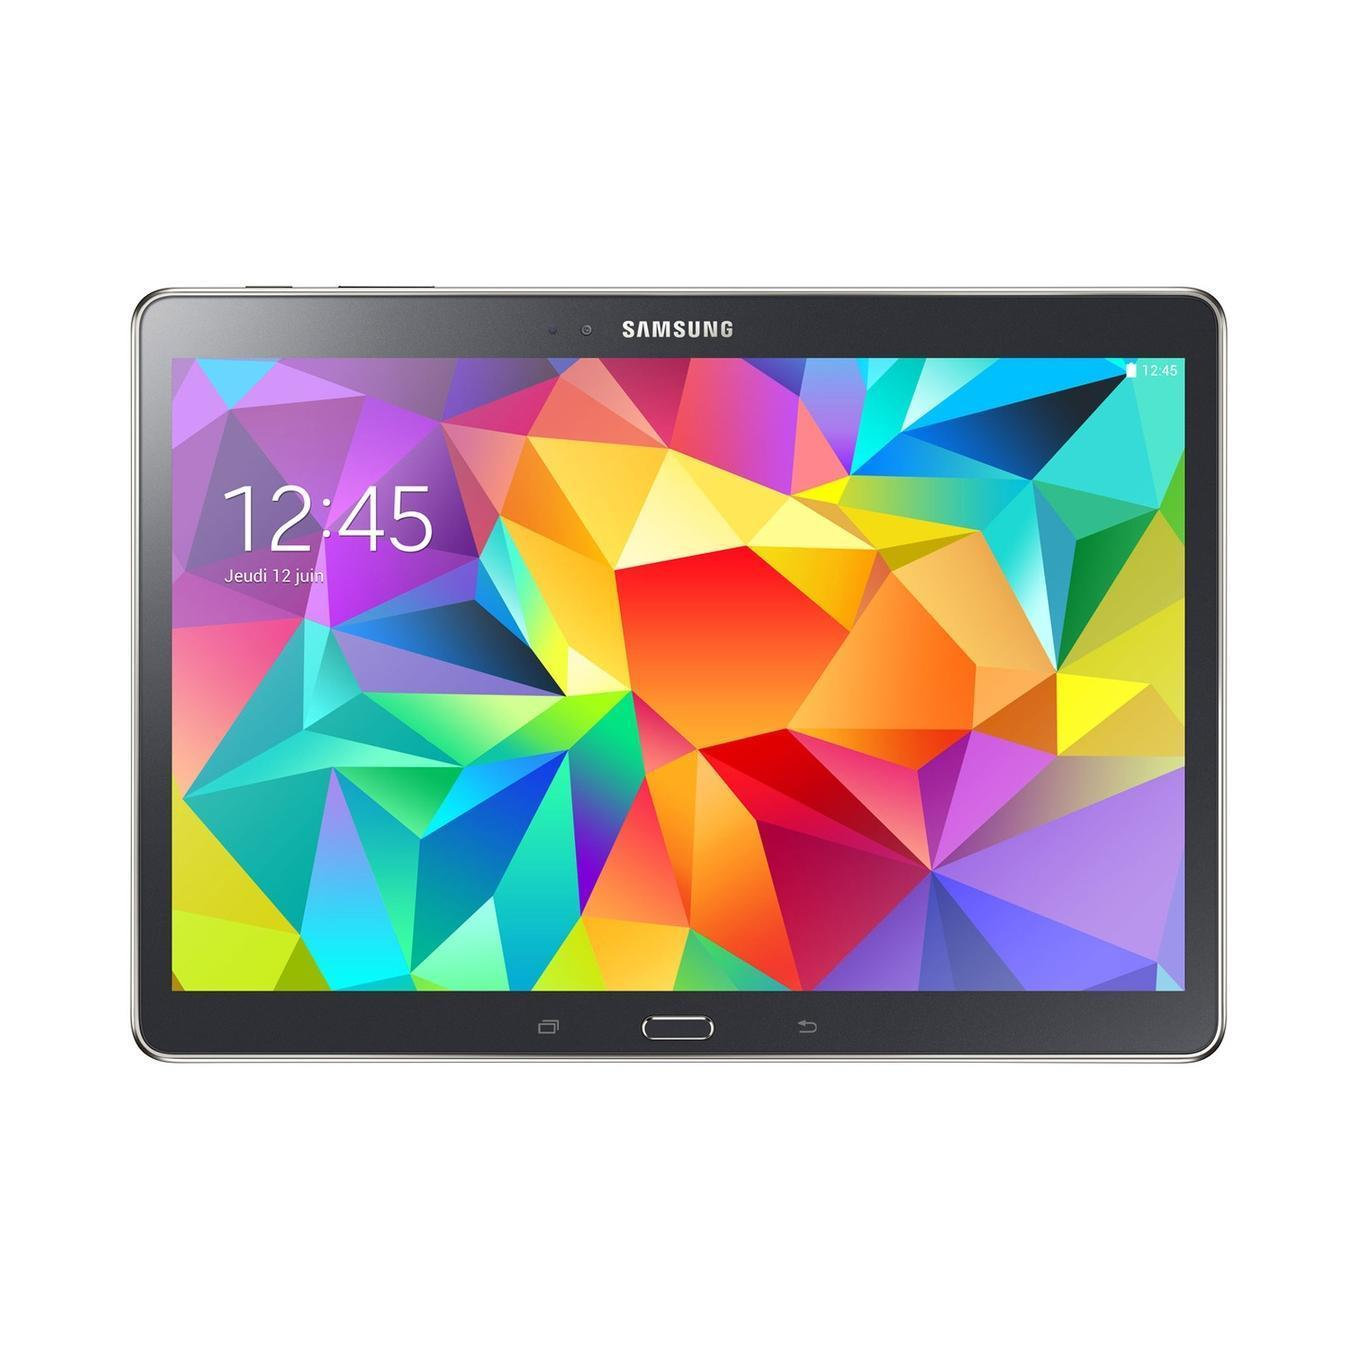 GALAXY TAB S 10.5 16 GB Gris